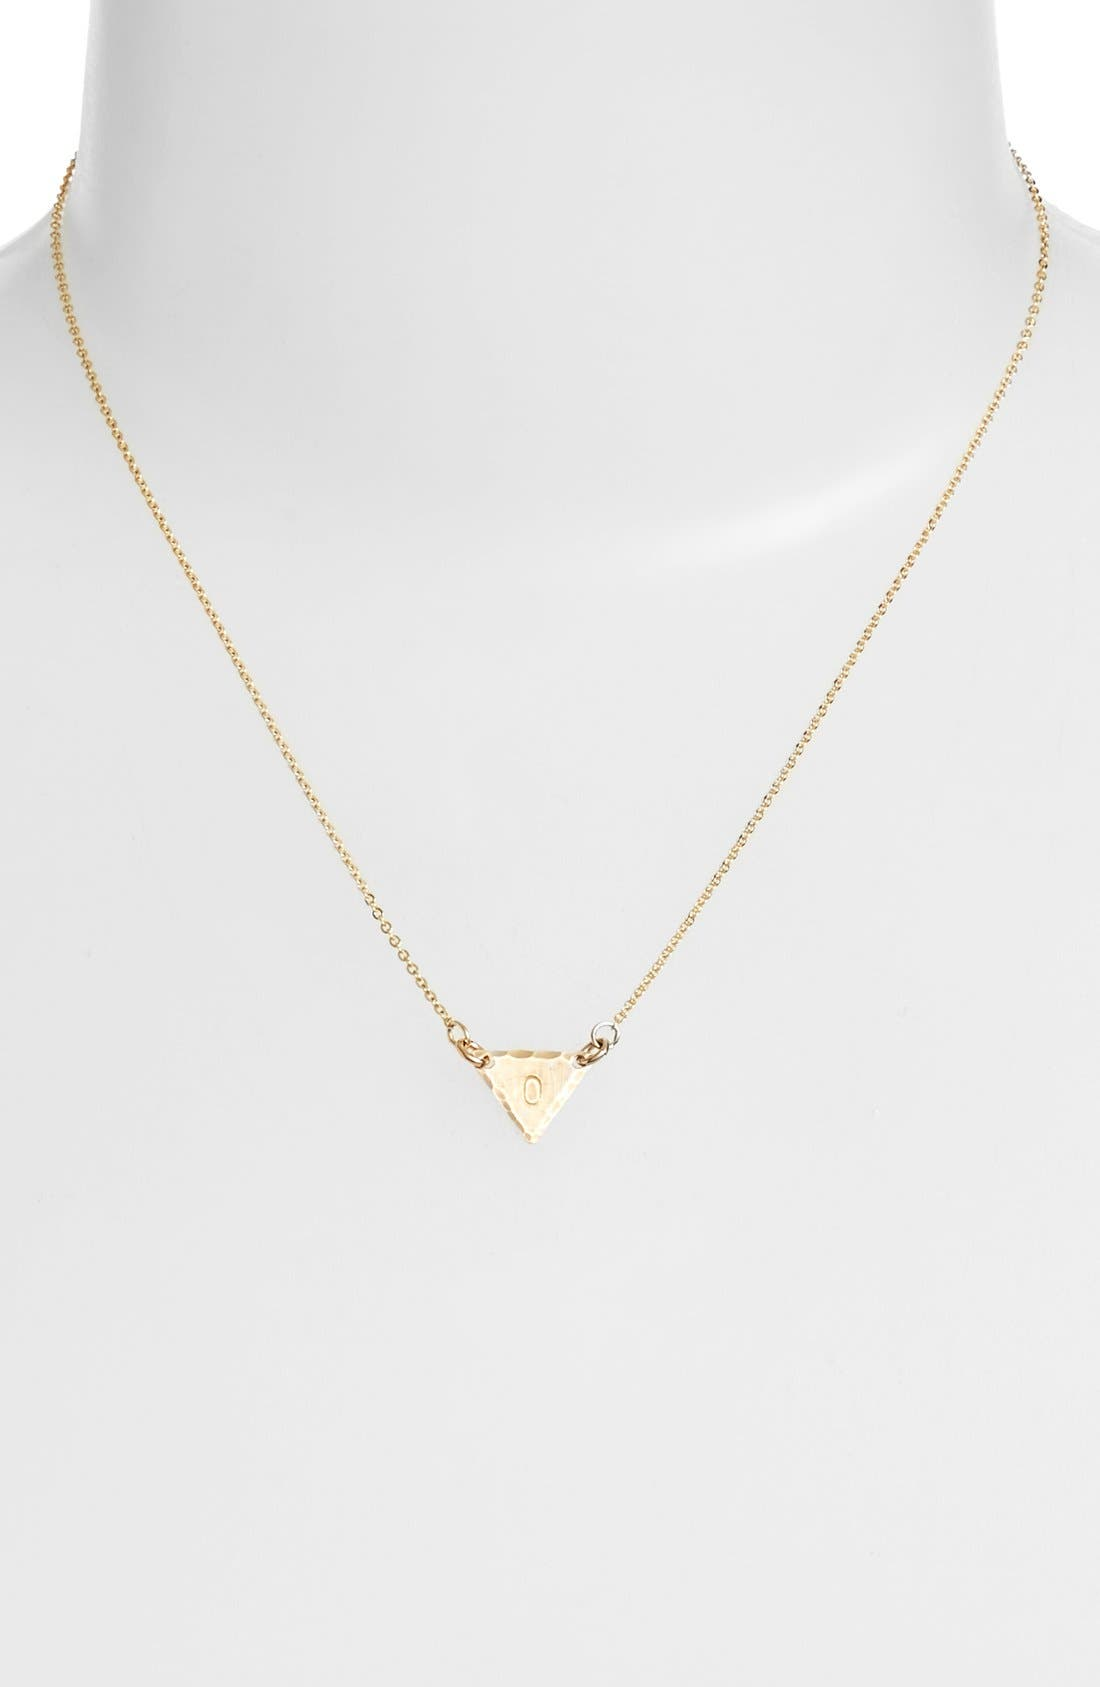 14k-Gold Fill Initial Triangle Necklace,                             Alternate thumbnail 41, color,